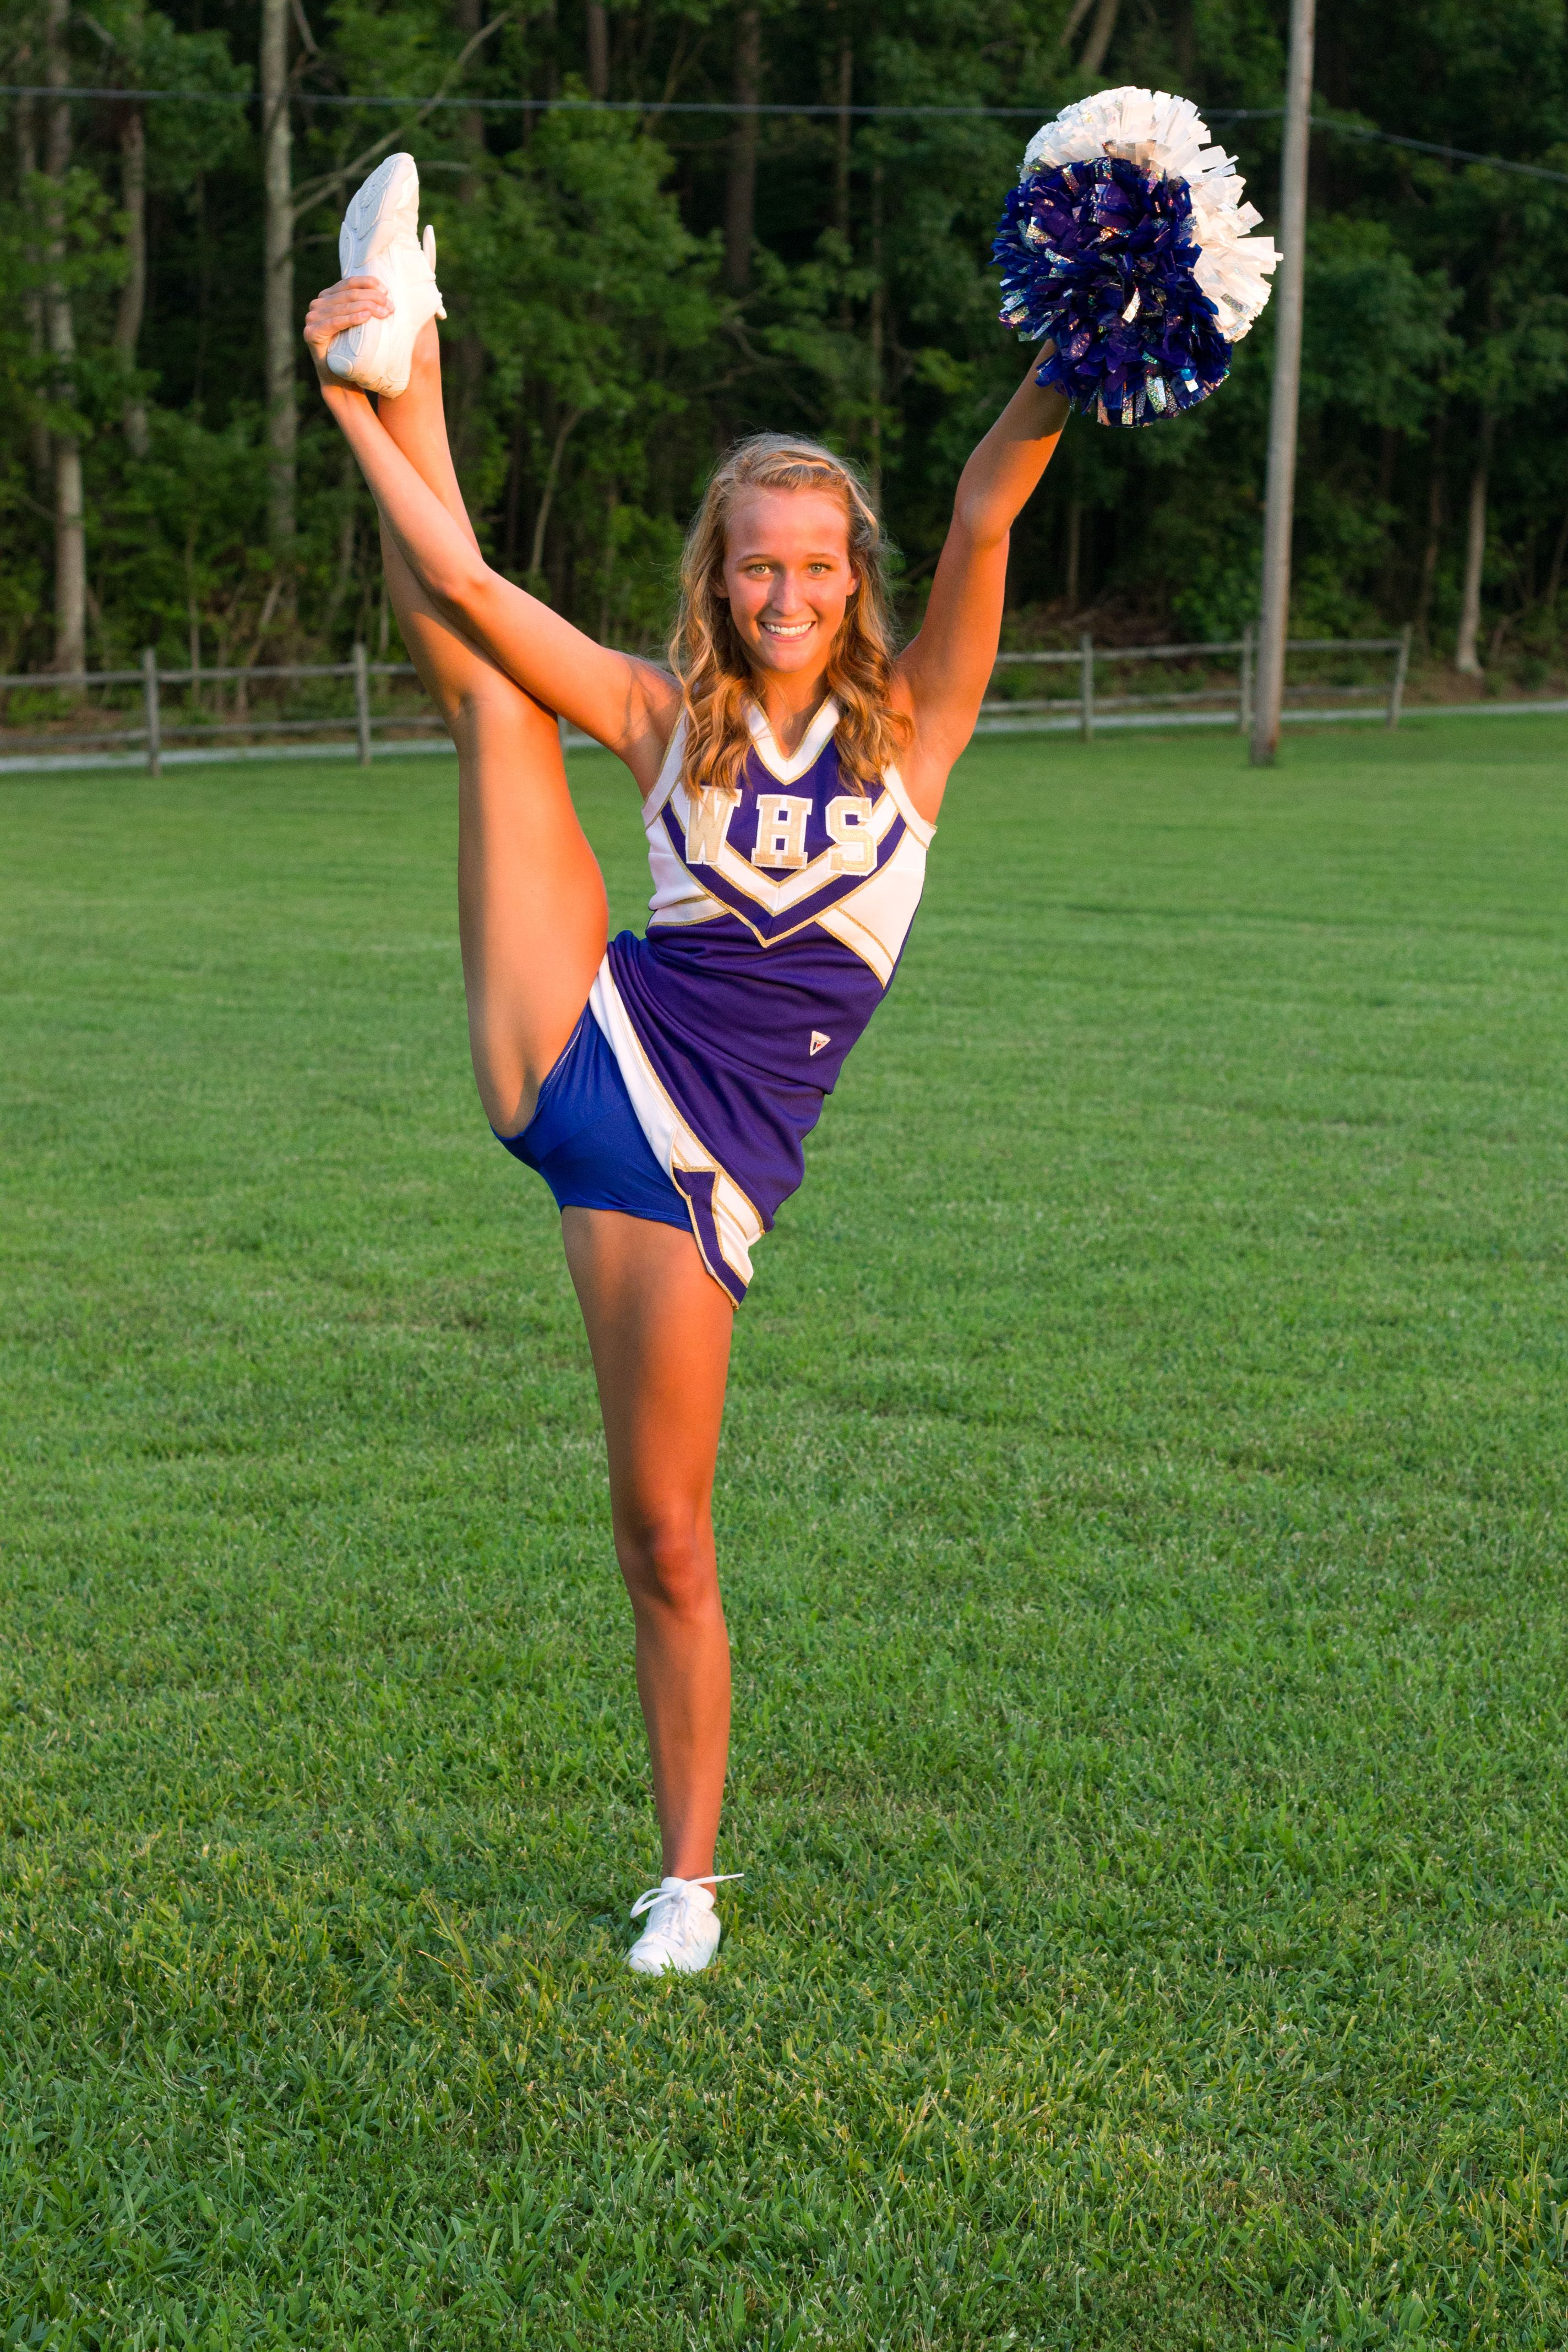 Poses For Cheer Pictures photo 10